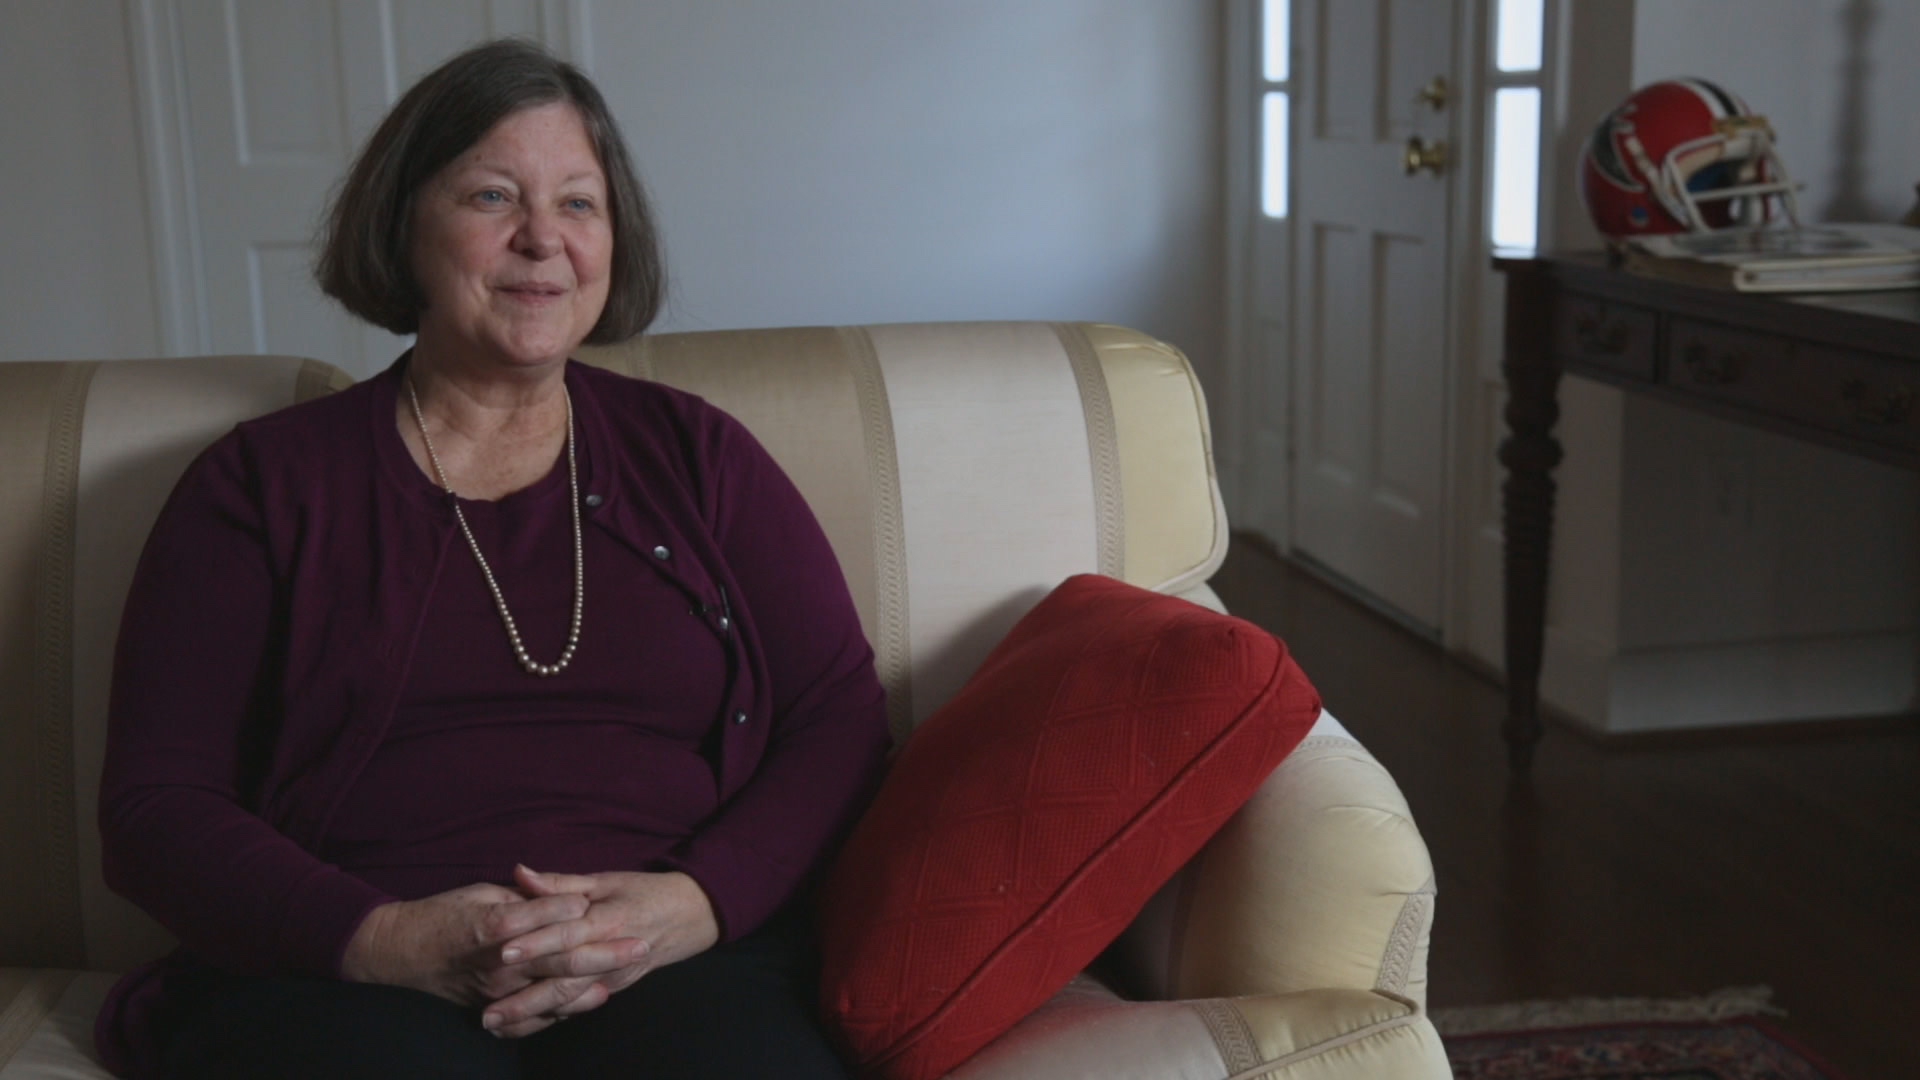 Mary Ann Easterling, the widow of former NFL player, Ray Easterling (December 2012)